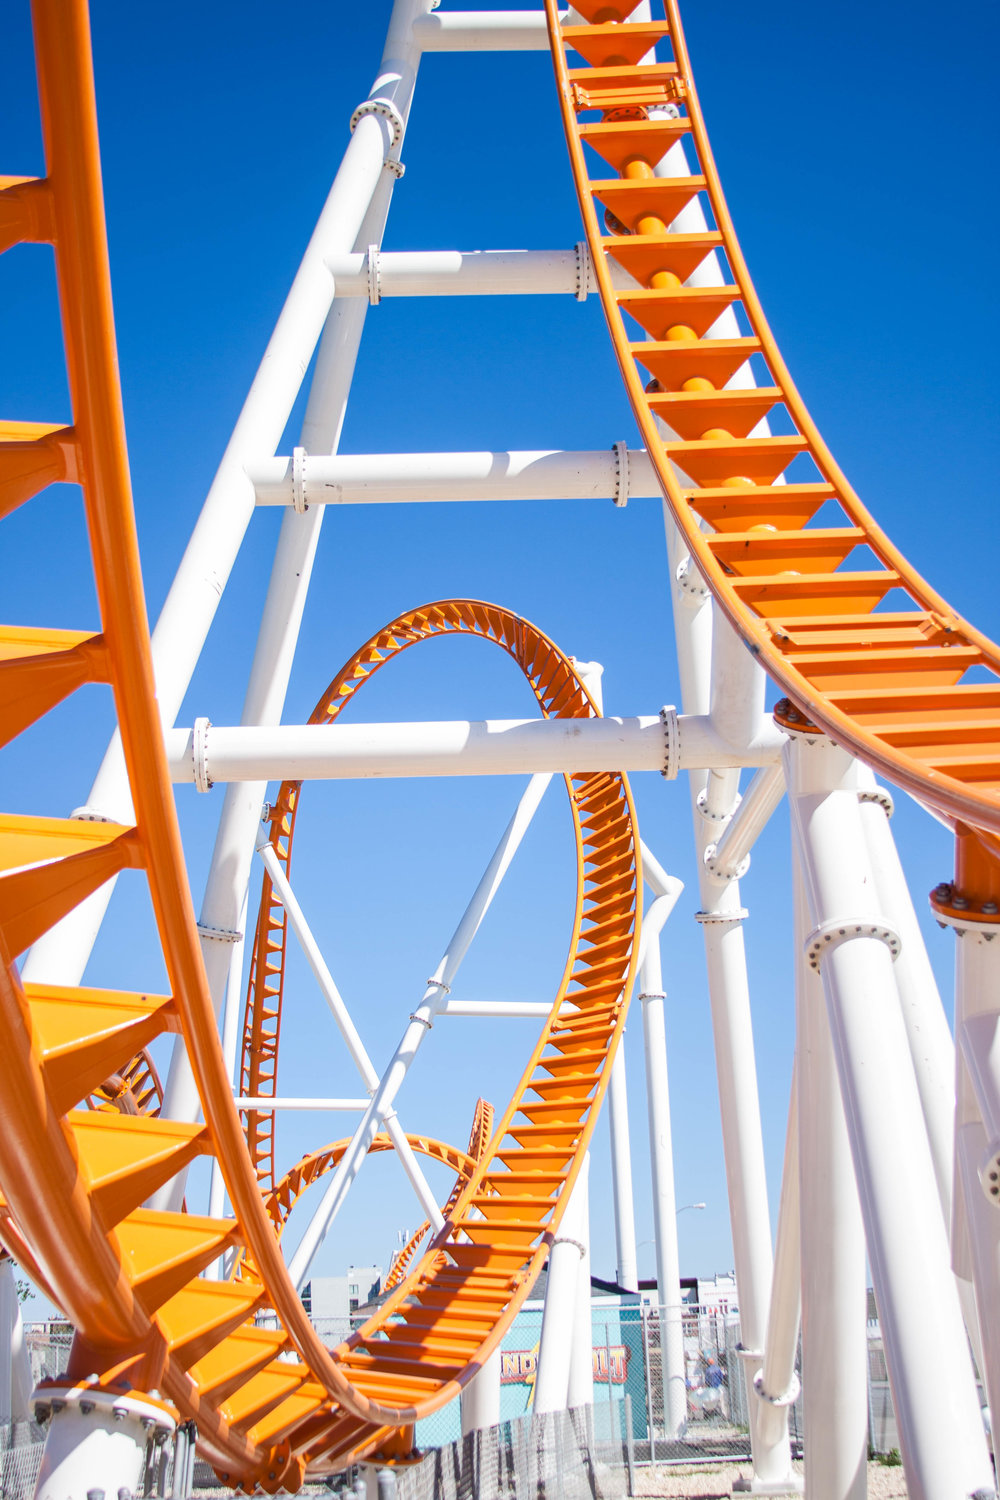 Orange tracks attached to the white support structure that makes up the Thunderbolt Roller Coaster in Brooklyn's Coney Island. MEP designed by 2L Engineering.